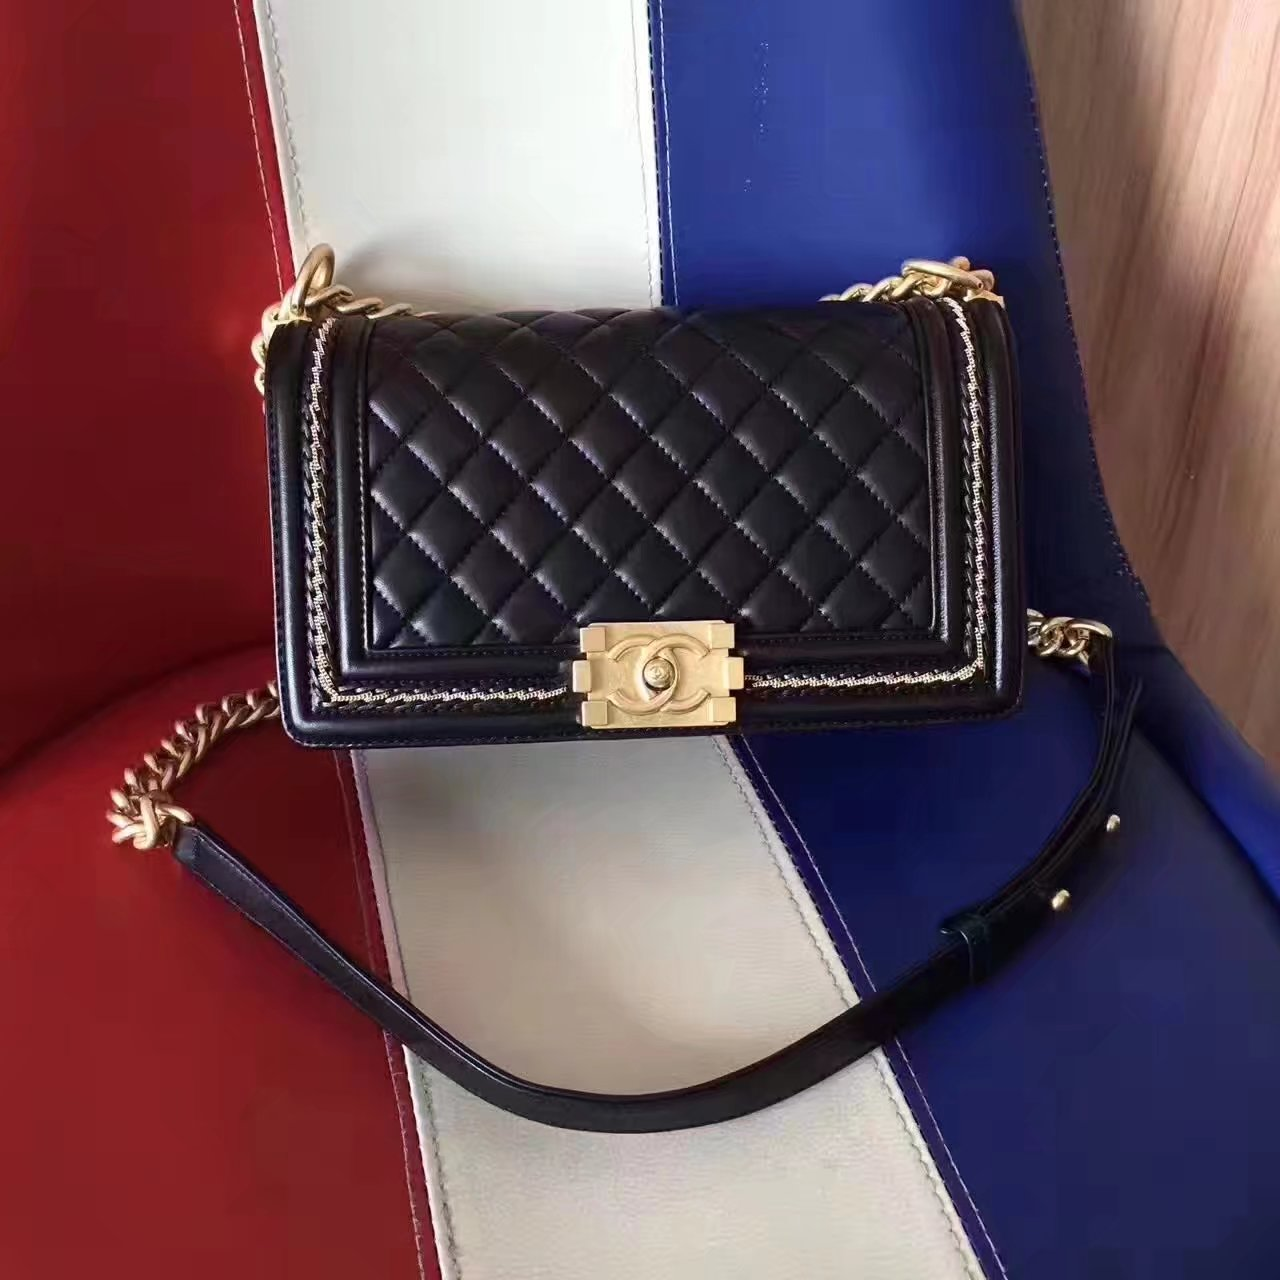 Chanel 2017 Boy Punched Chain Shoulder Bag Black With Gold